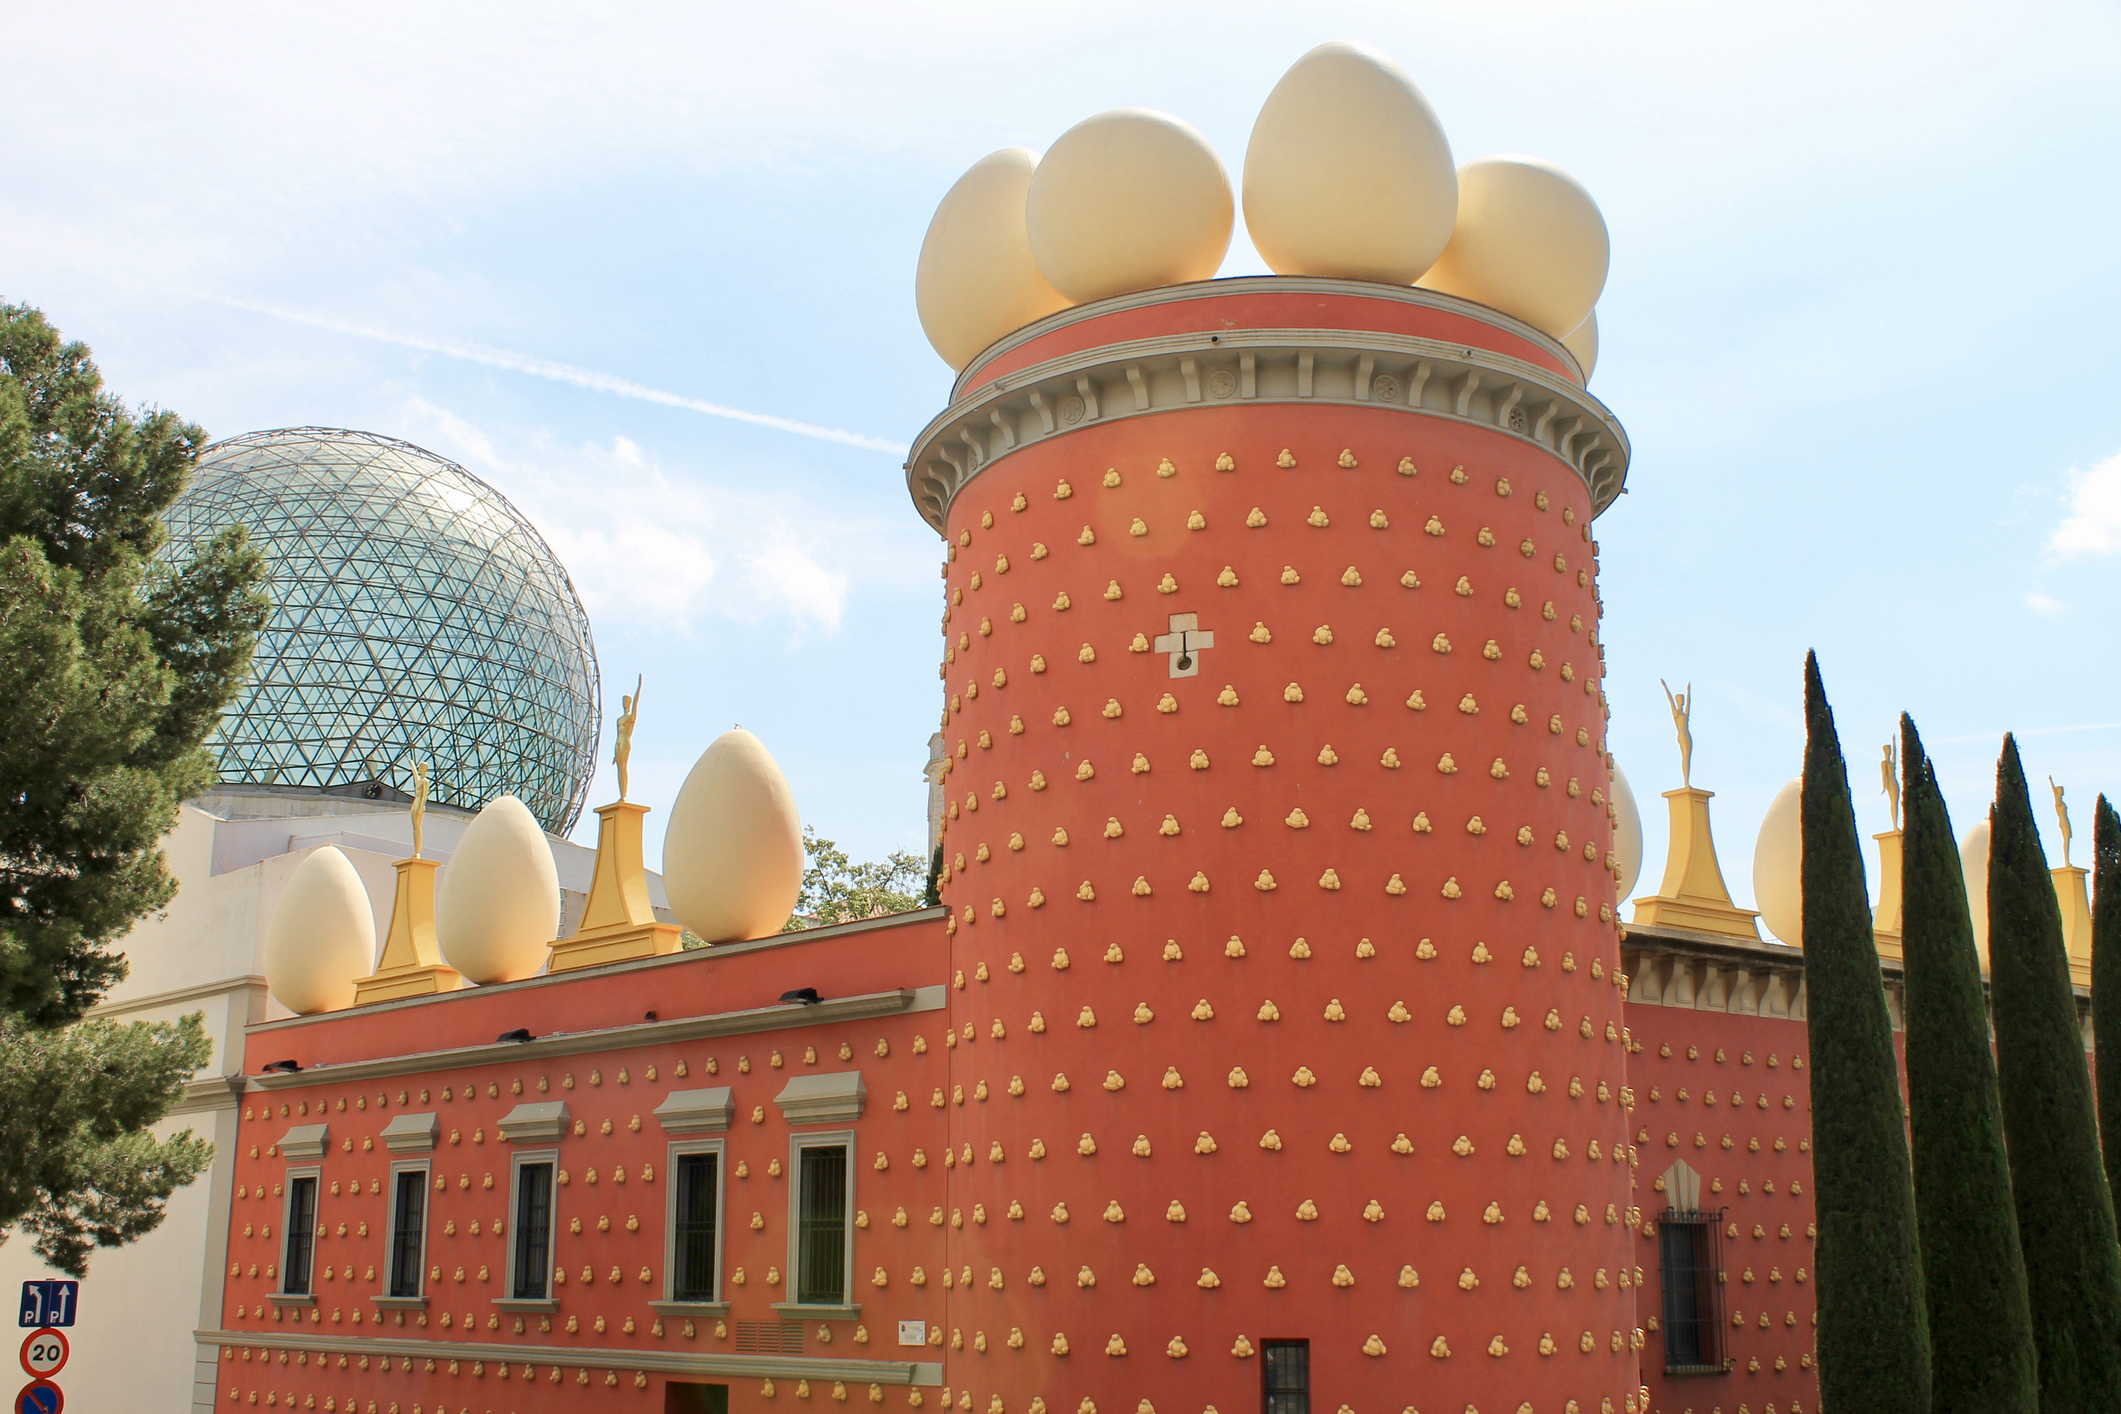 The Dali Theatre and Museum is a museum of the artist Salvador Dali in his home of Figueres. There is a crypt below the stage where the famous artist is buried. It is one of the most popular museums in Spain, consistently receiving over a million visitors. Perhaps the most famous aspect of the building is the series of giant eggs that surround the edge of the roof.